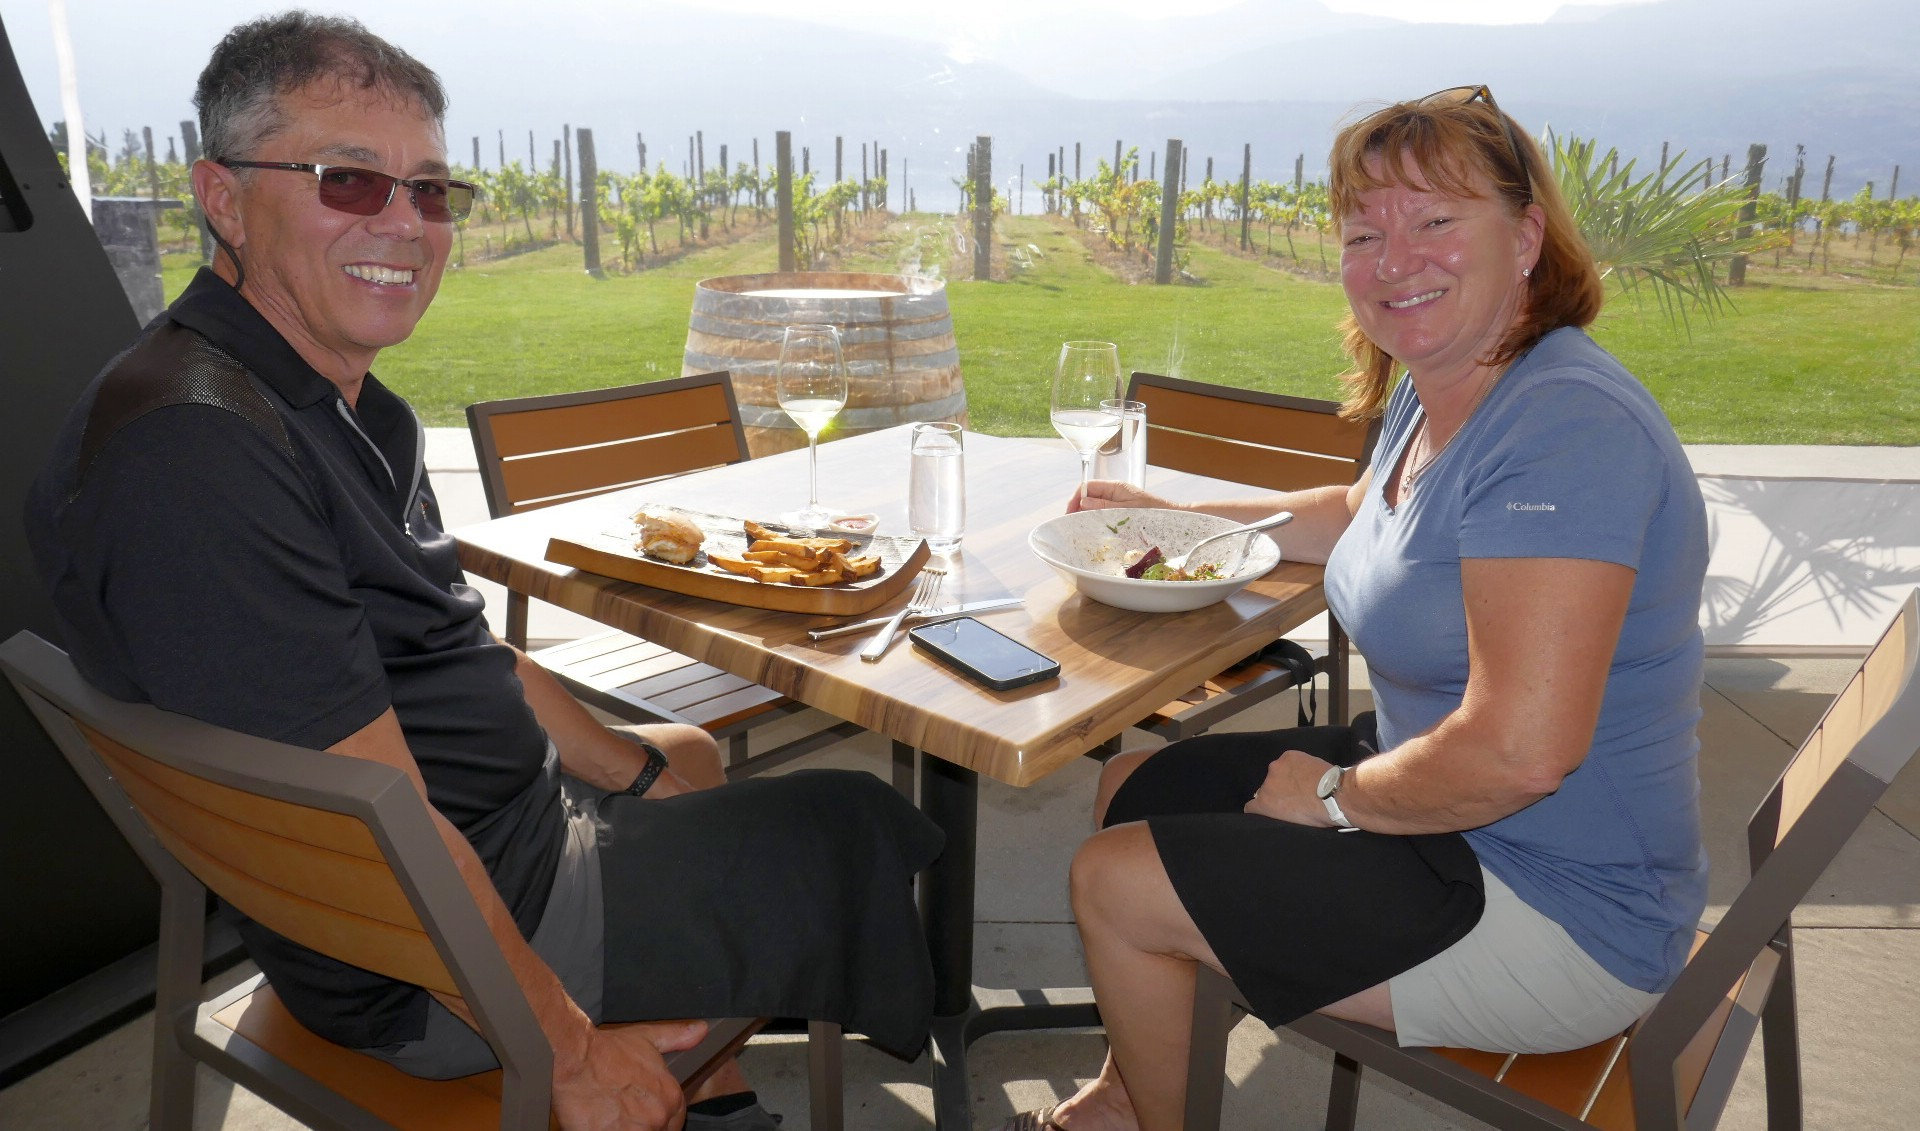 Lunch au  vignoble50 th Paralell